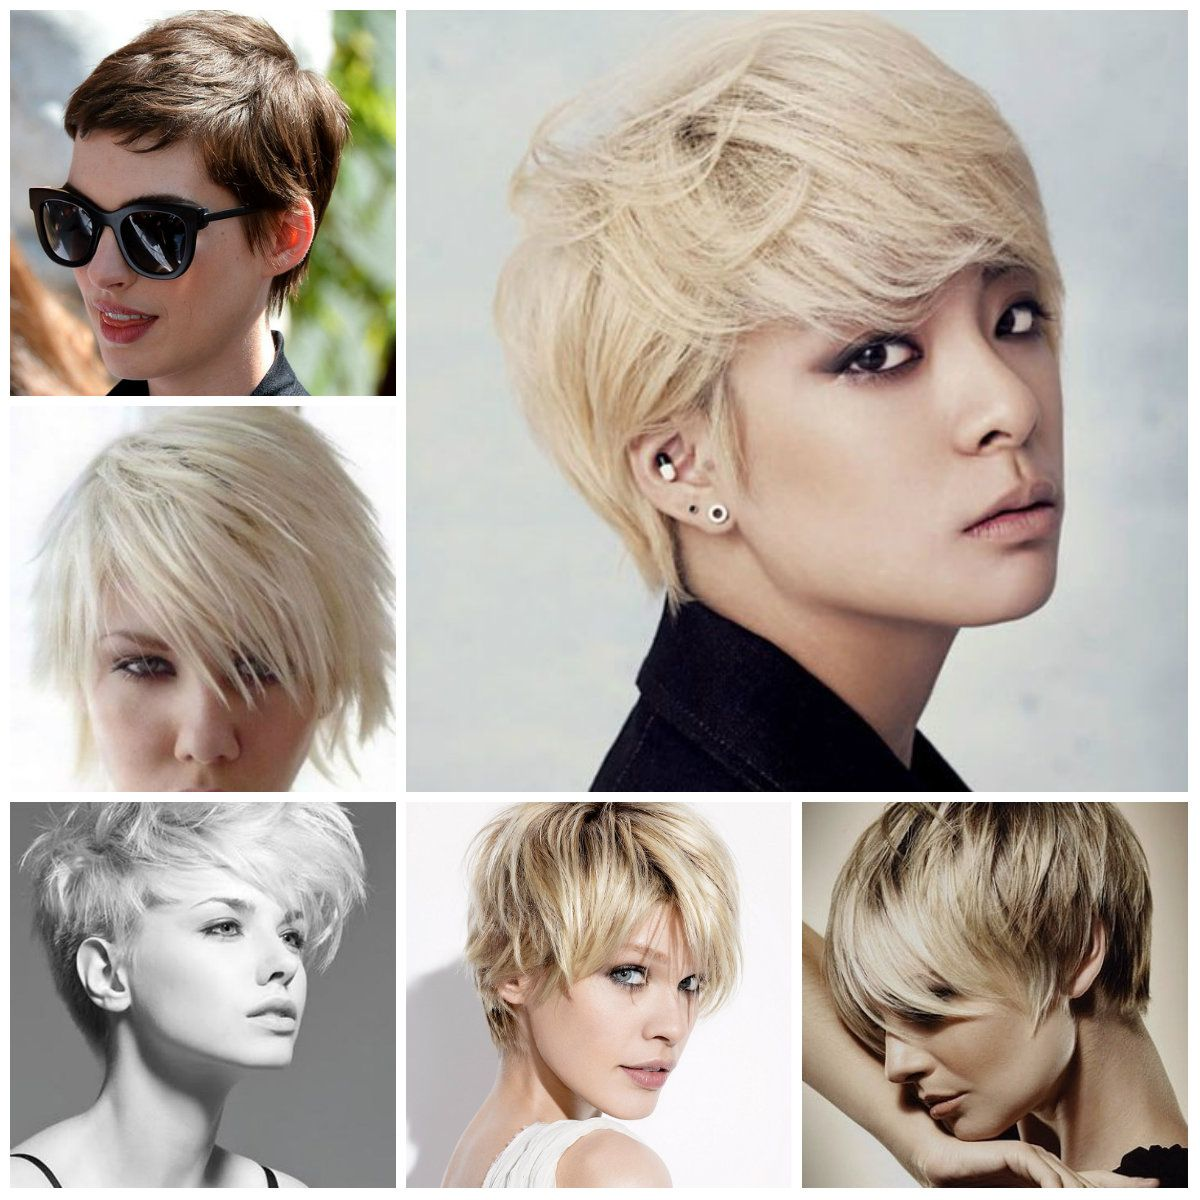 Latest Pixie Haircut Ideas 2016 | Trendy Hairstyles 2015 / 2016 for ...